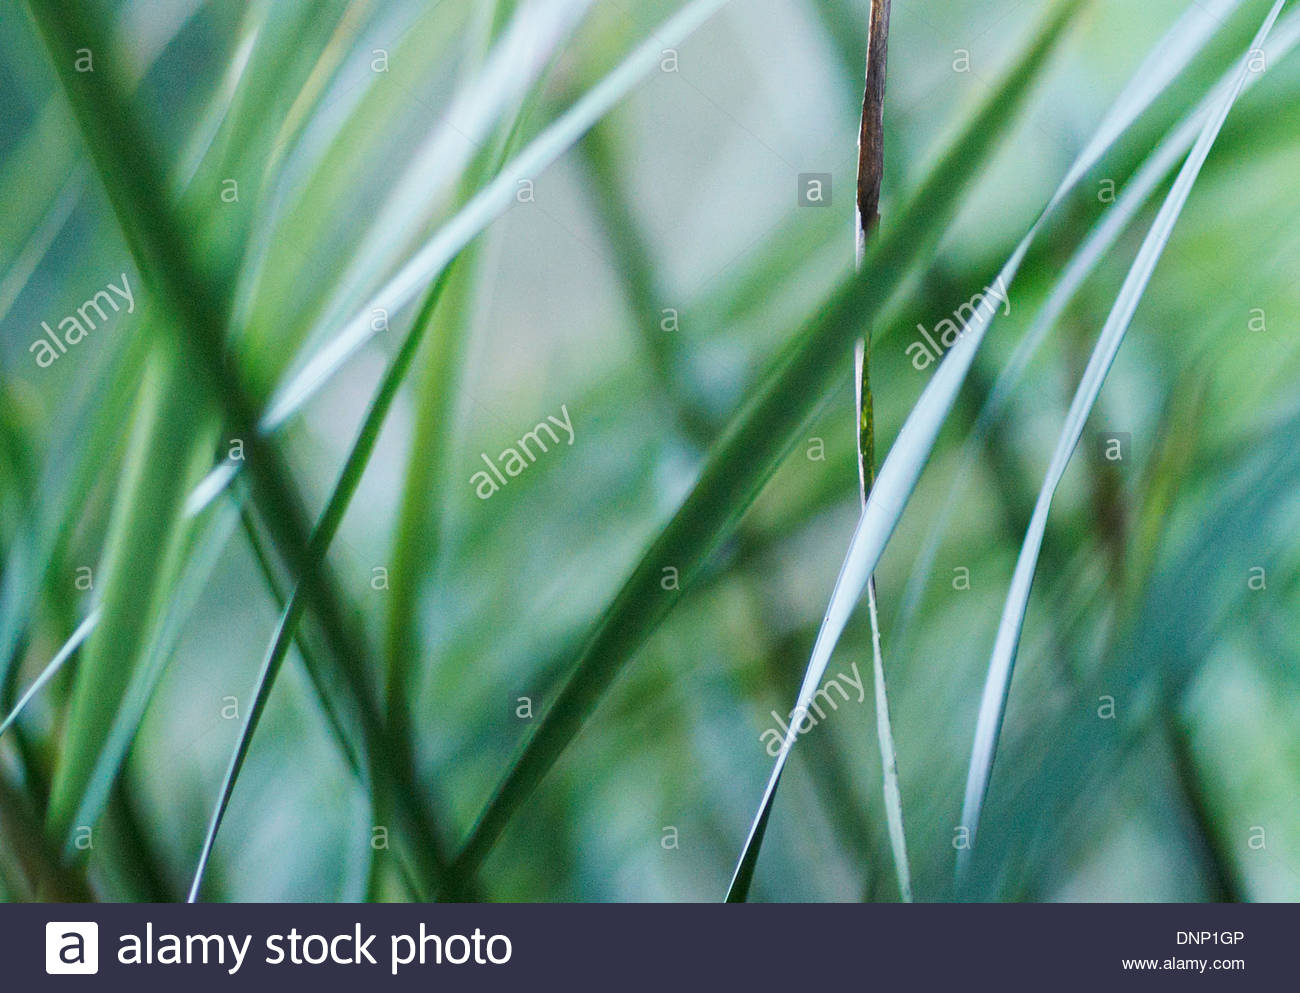 soft focus image from amongst tall lush green grass - Stock Image